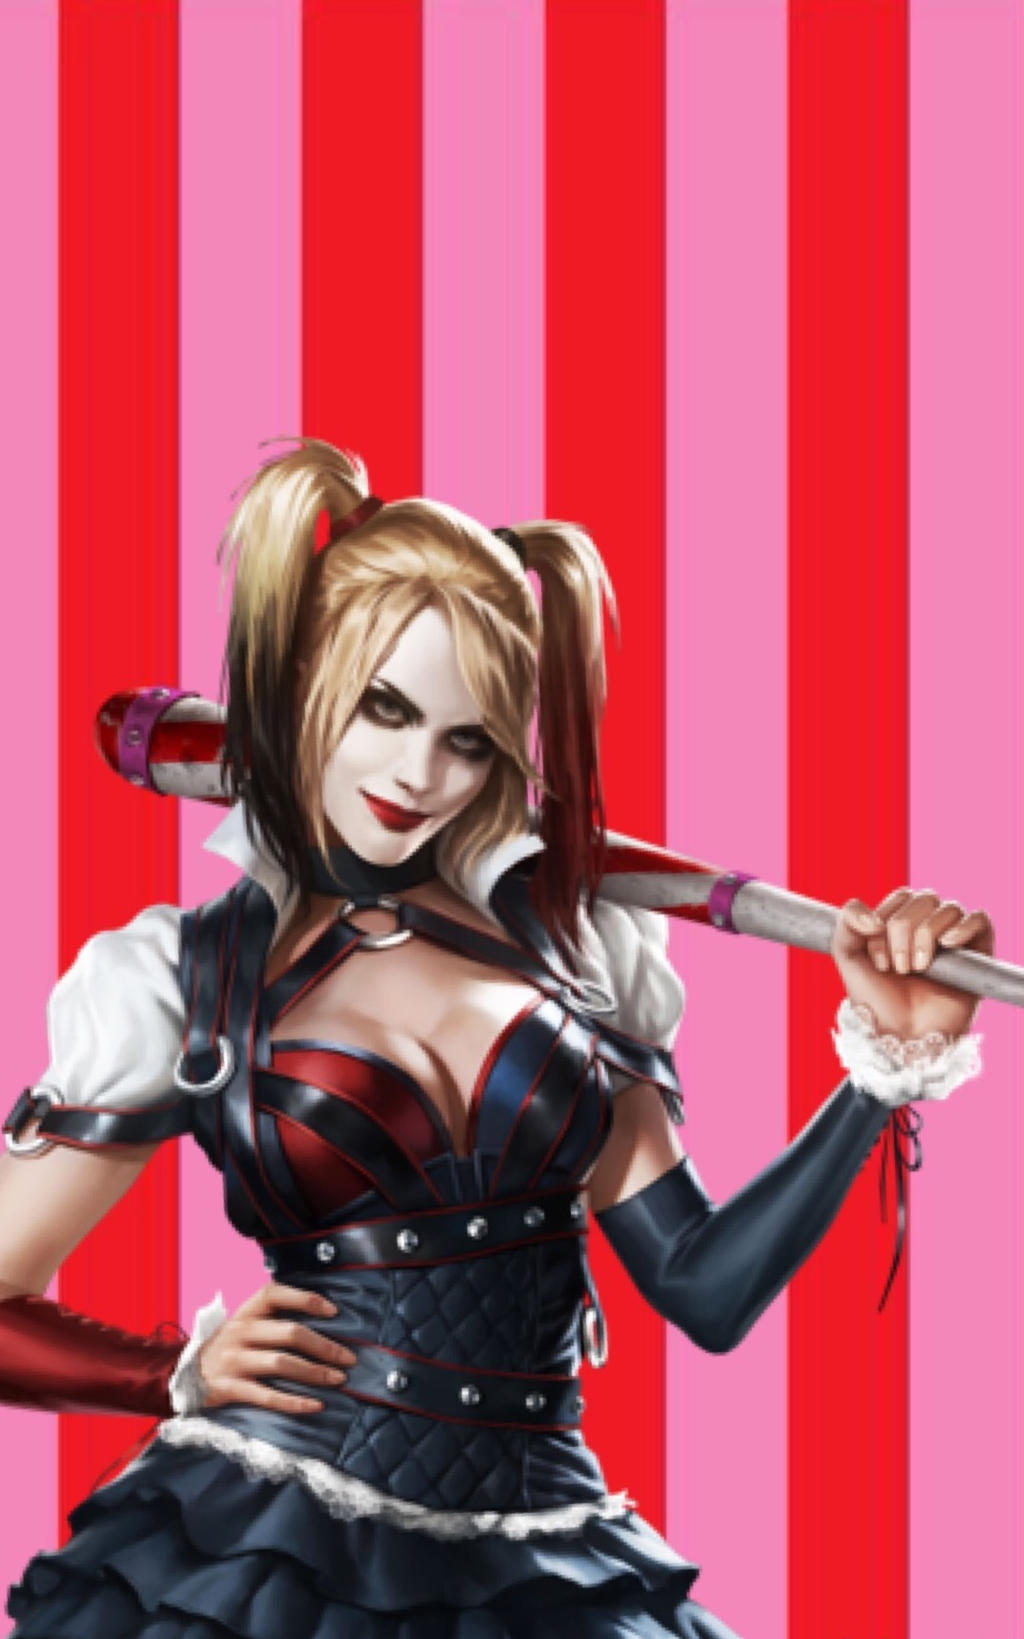 Harley Quinn Wallpaper For Iphone 7 The Galleries Of Hd Wallpaper